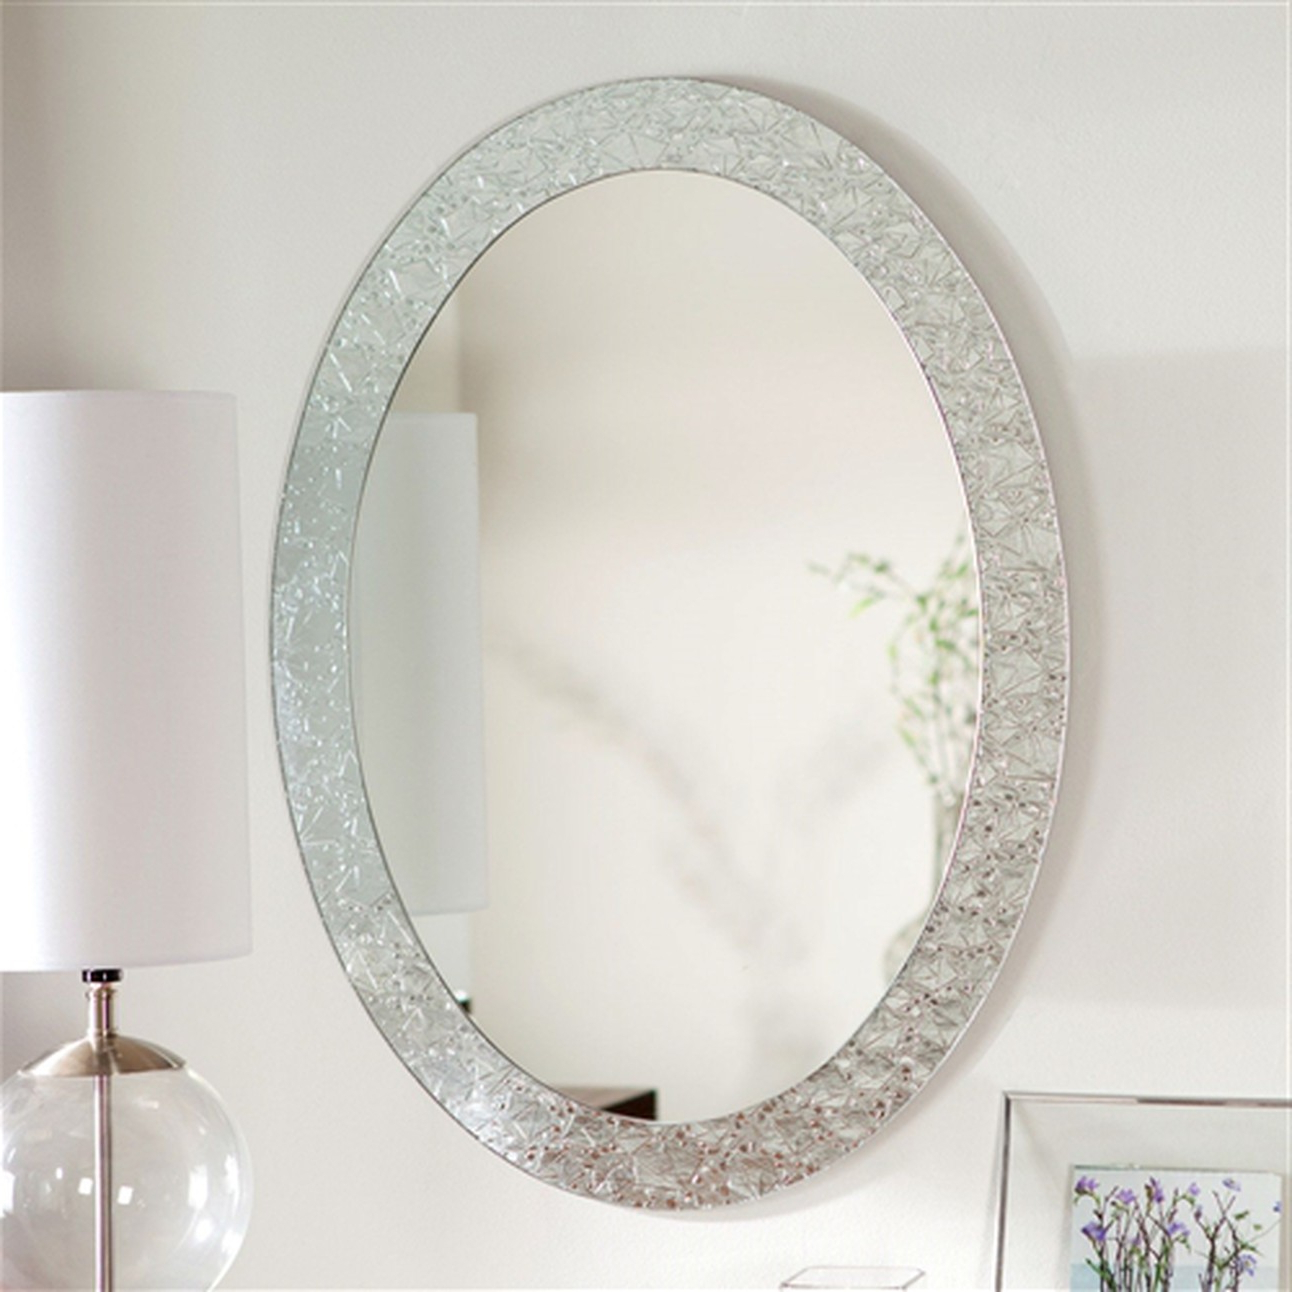 Widely Used Elegant Wall Mirrors Pertaining To Oval Frame Less Bathroom Vanity Wall Mirror With Elegant Crystal (Gallery 12 of 20)